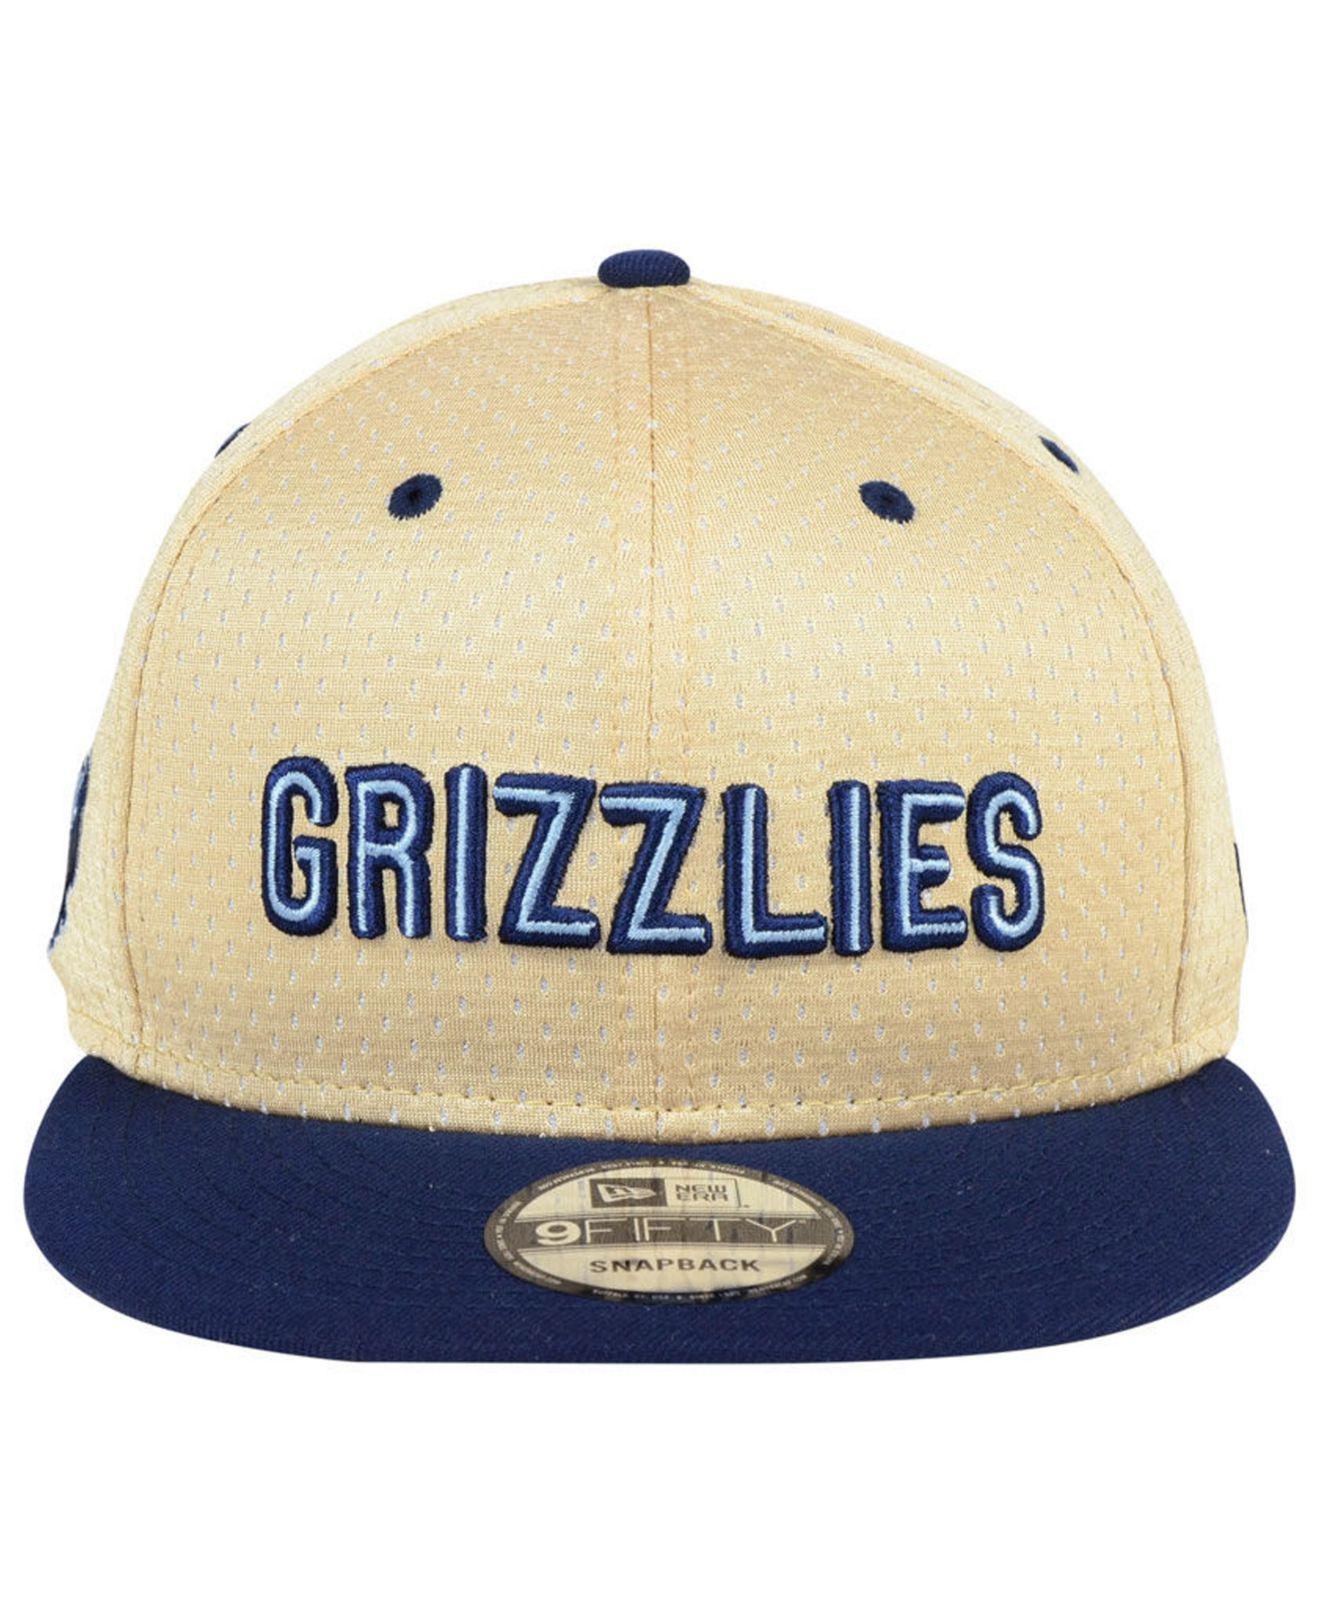 differently e41a5 962c2 ... cheap lyst ktz memphis grizzlies champagne 9fifty snapback cap in blue  for men 91db6 65e9d